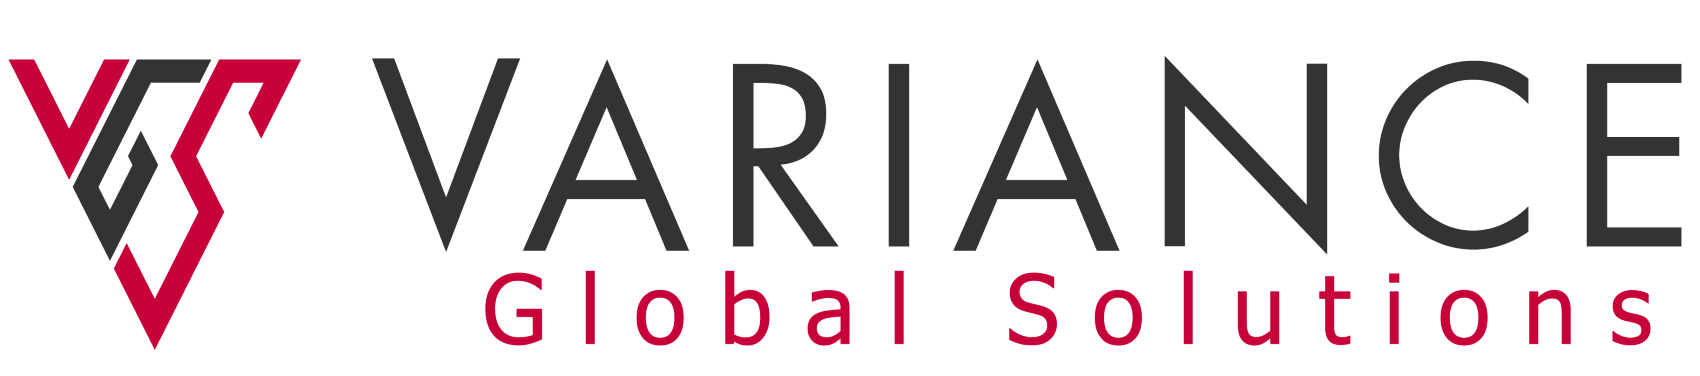 Variance Global Solutions